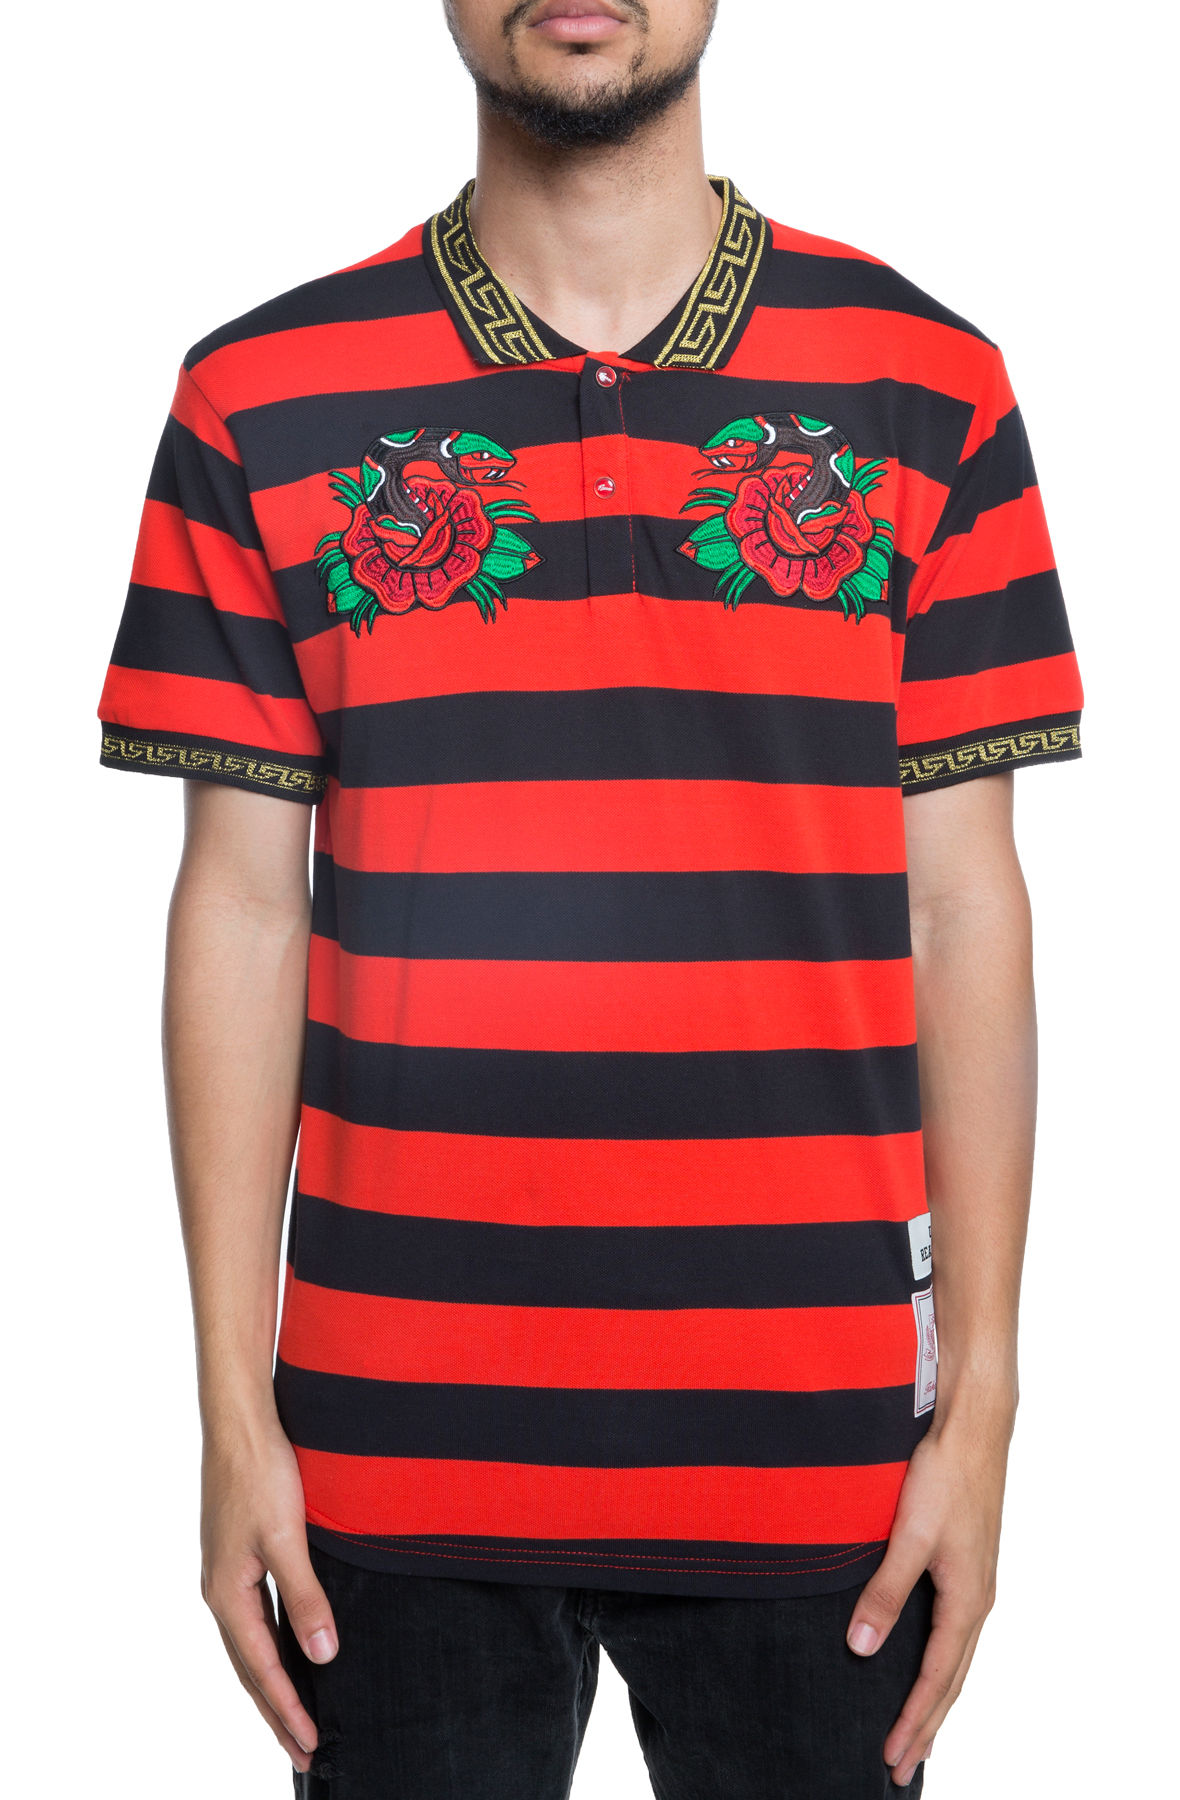 Image of The Venom Striped Polo in Red